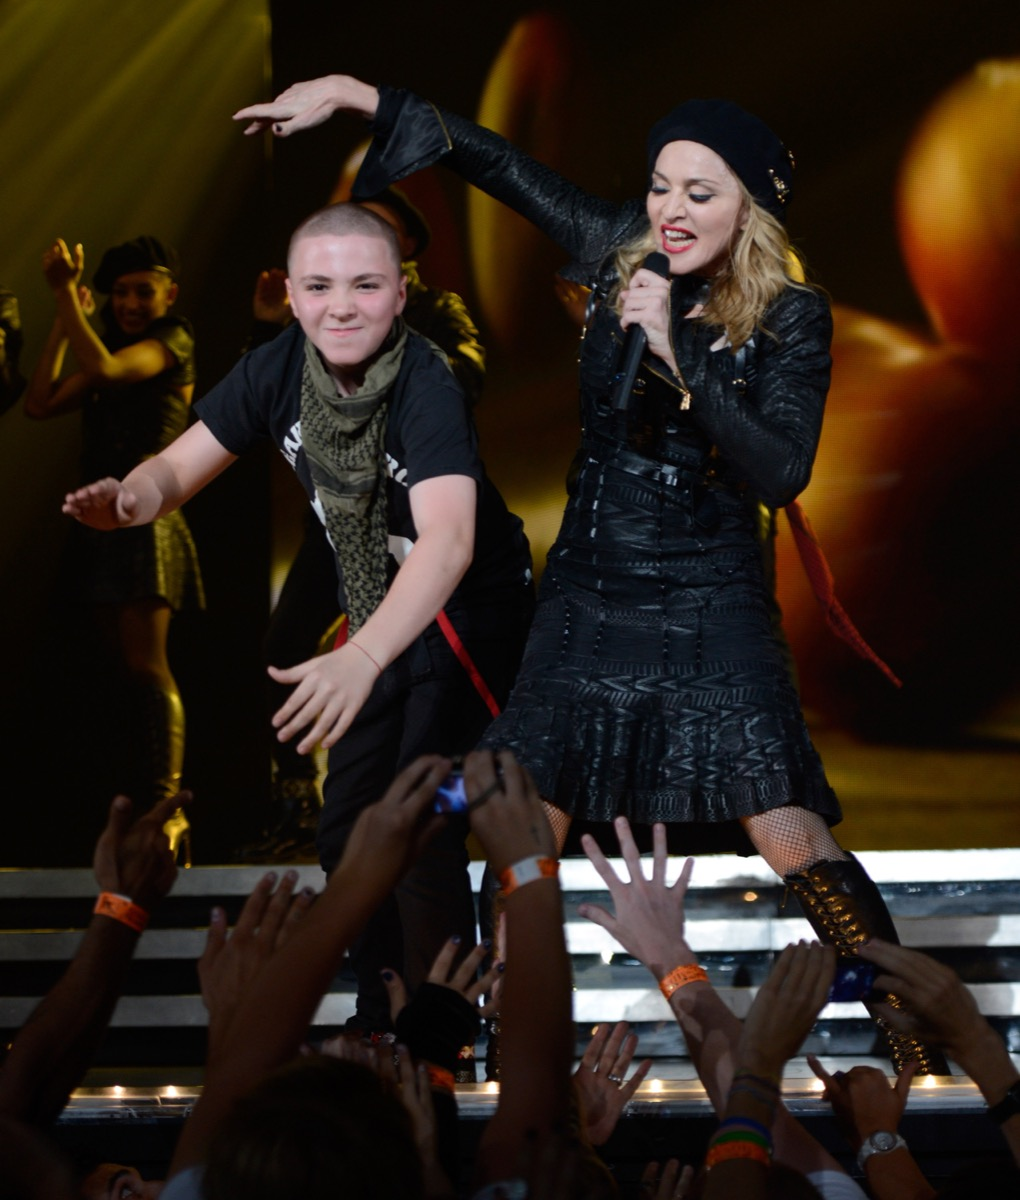 Madonna and Rocco Ritchie performing MDNA tour